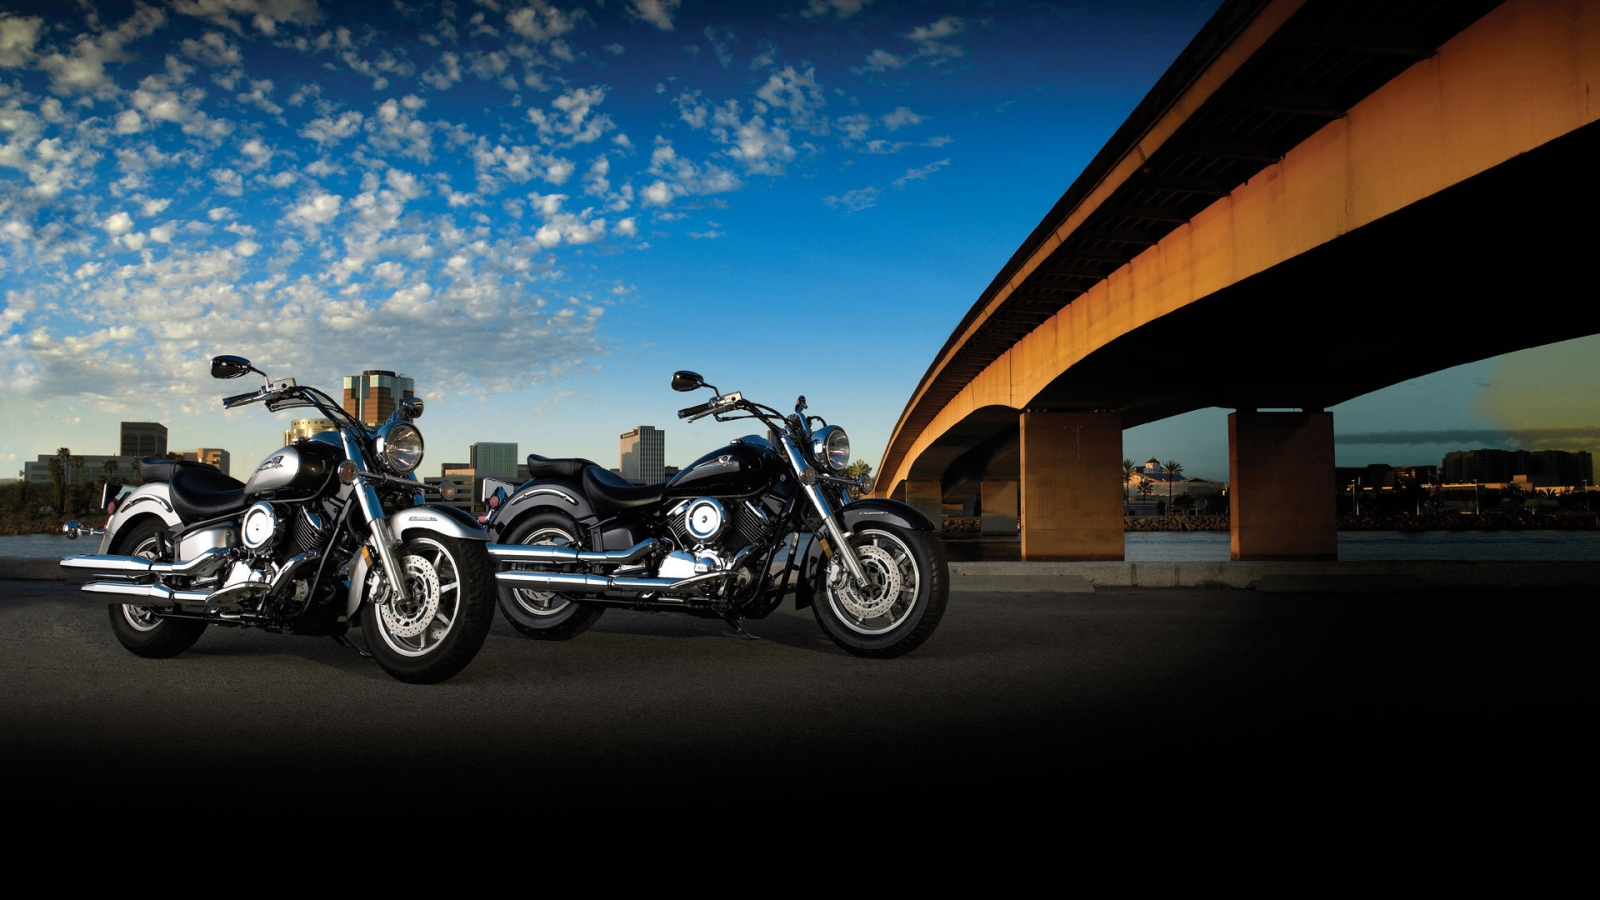 Yamaha XVS1100A DragStar Classic for 1600 x 900 HDTV resolution